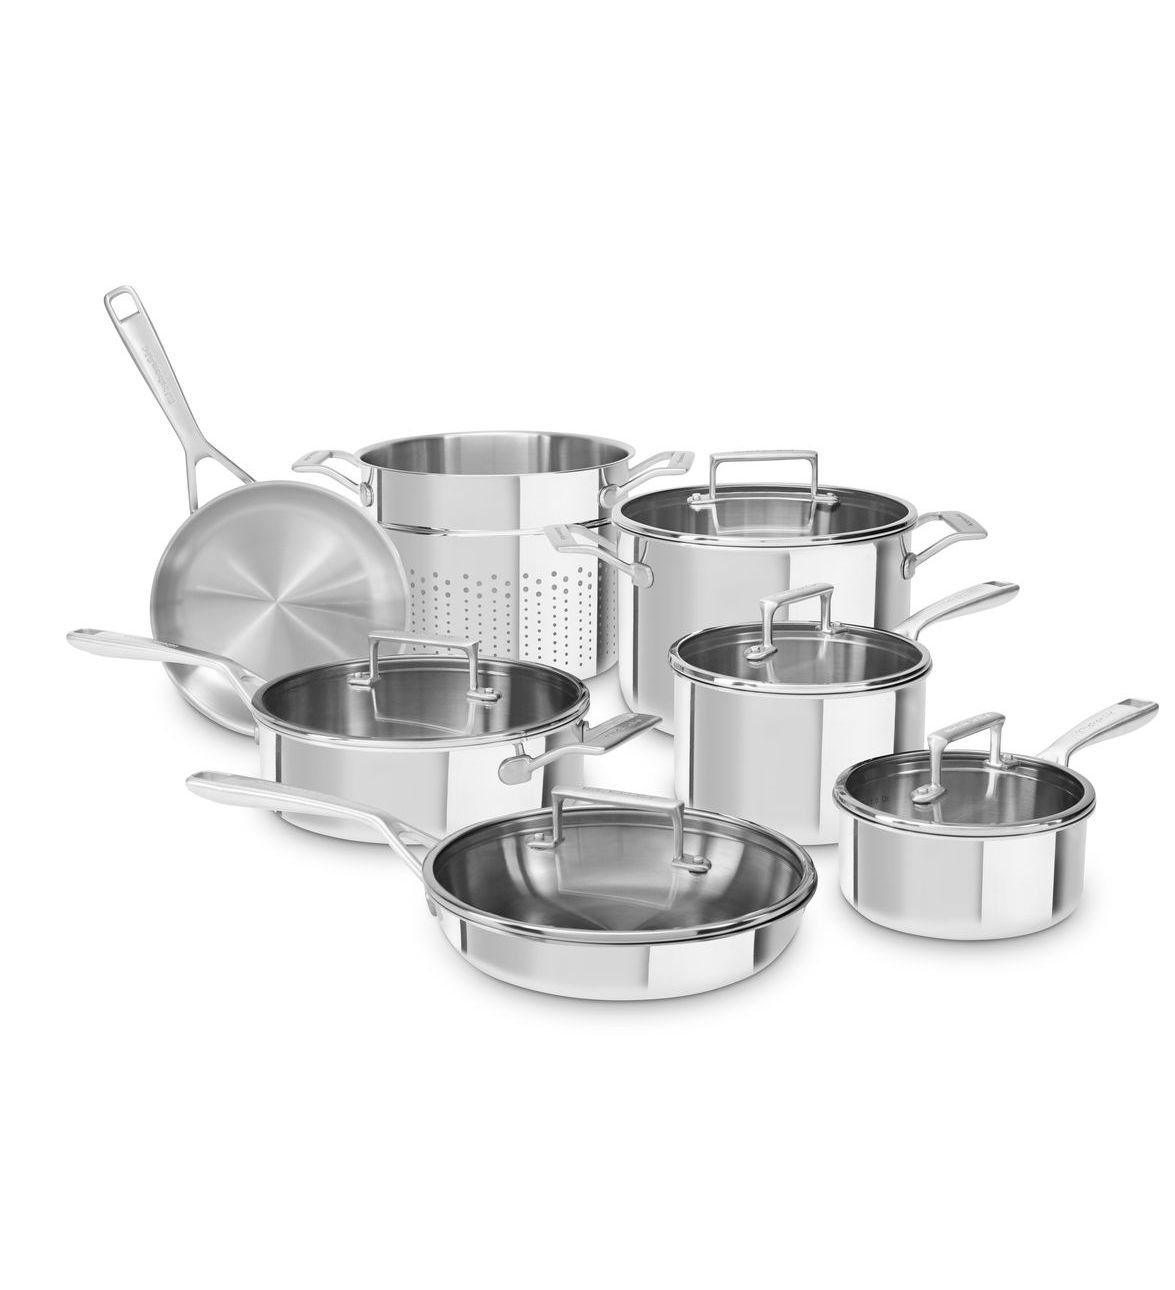 Kitchenaid Tri Ply Stainless Steel 12 Piece Set Only 222 99